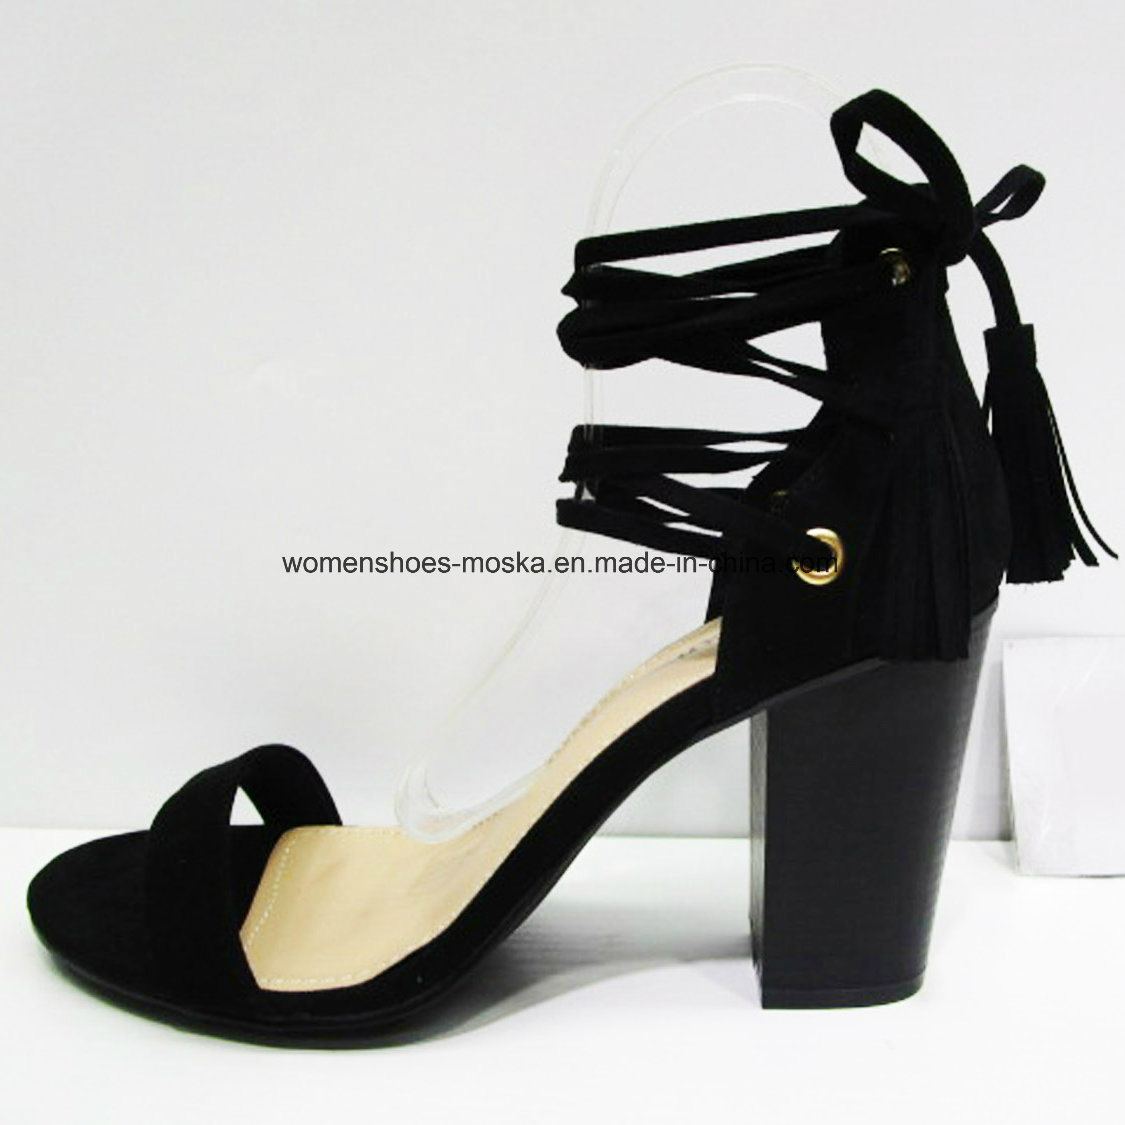 New Design Women Fashion High Heel Block Sandal with Peep Toe